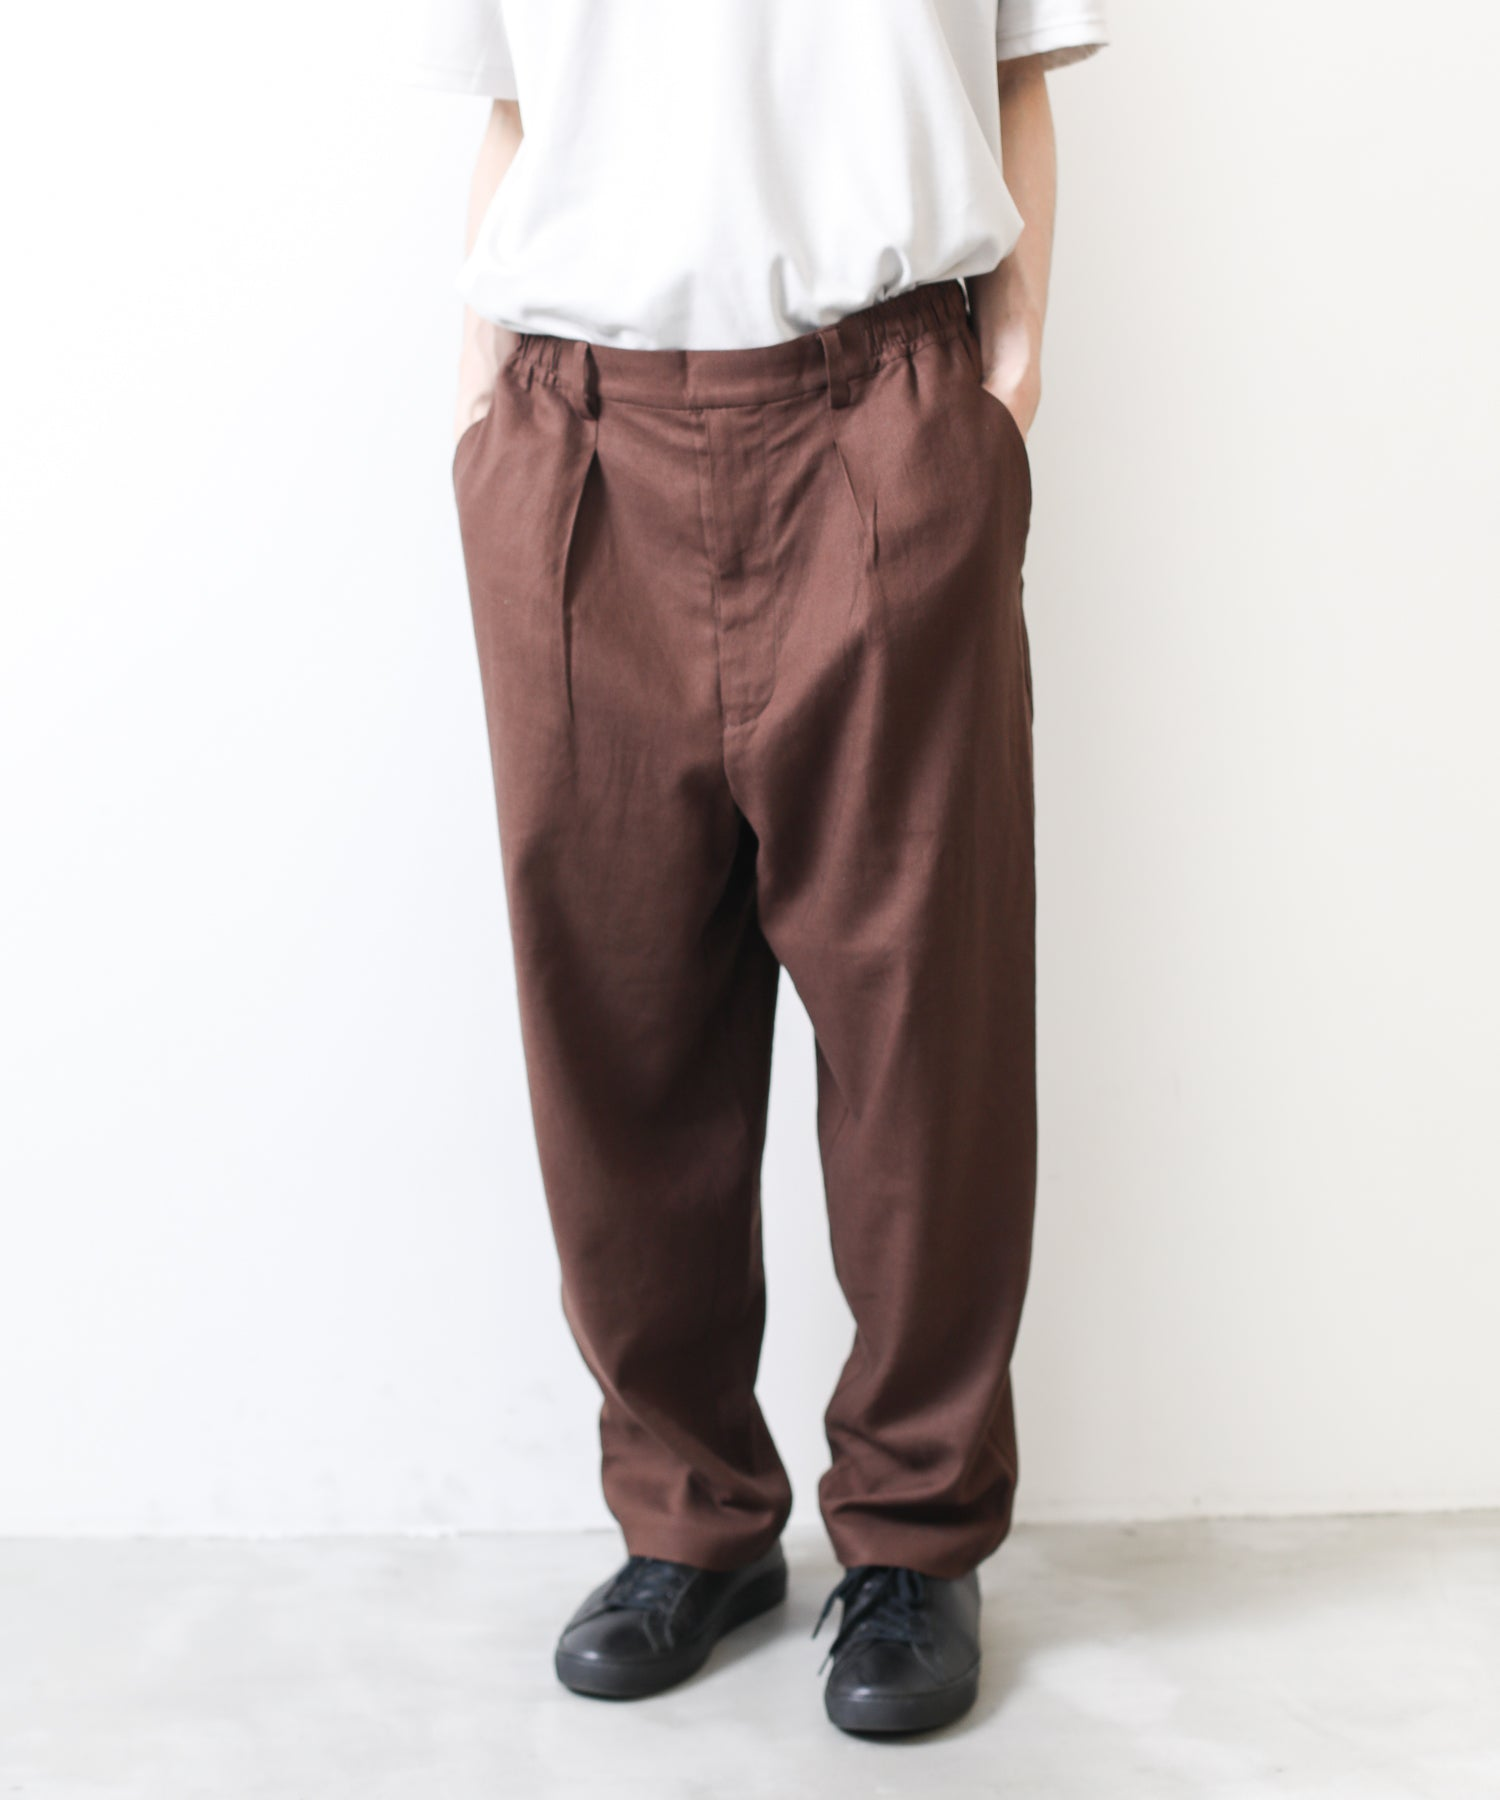 【wonderland】Tailored slacks pants